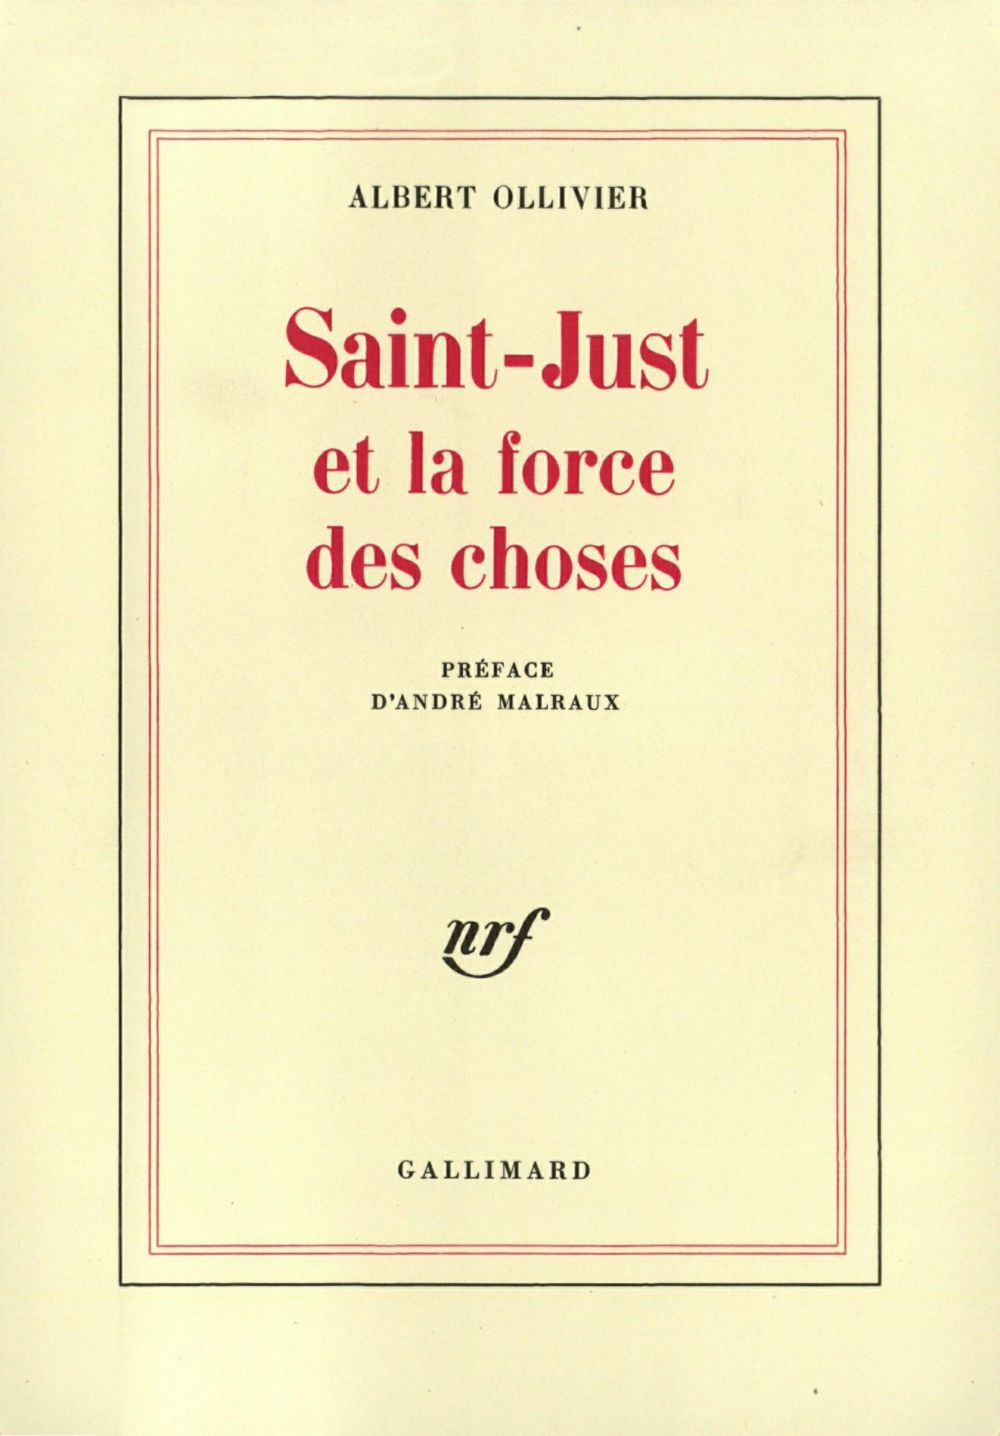 Saint-Just et la force des choses